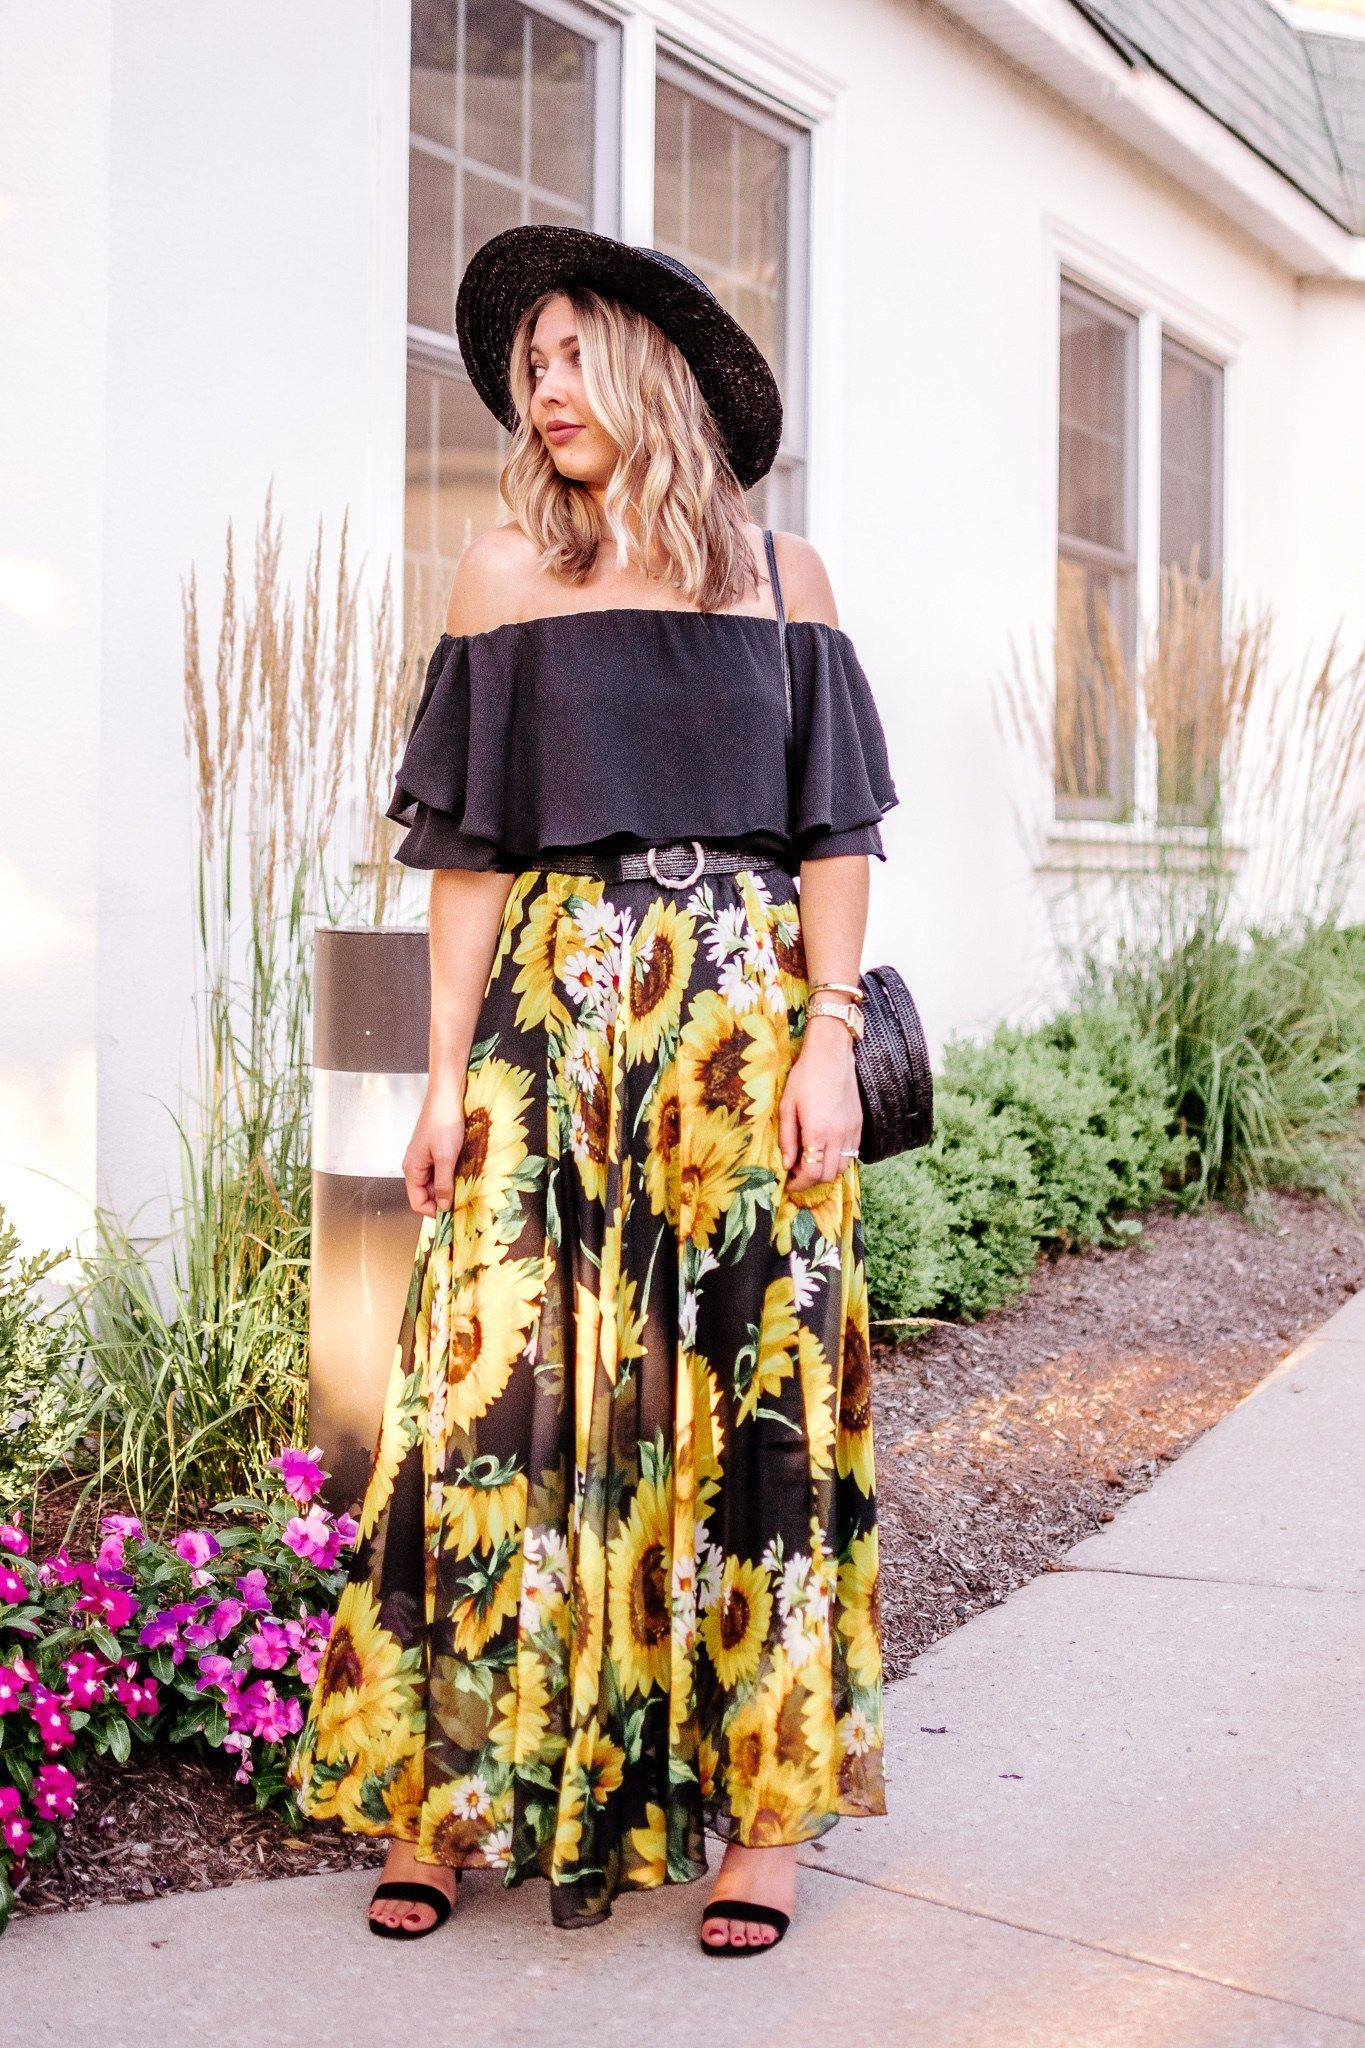 How To Dress Up A Sunflower Skirt With A Black Off The Shoulder Top And Simple Black Heels Black Ruffle Top Sunflower Max Night Outfits Skirts Chiffon Tops [ 2048 x 1365 Pixel ]